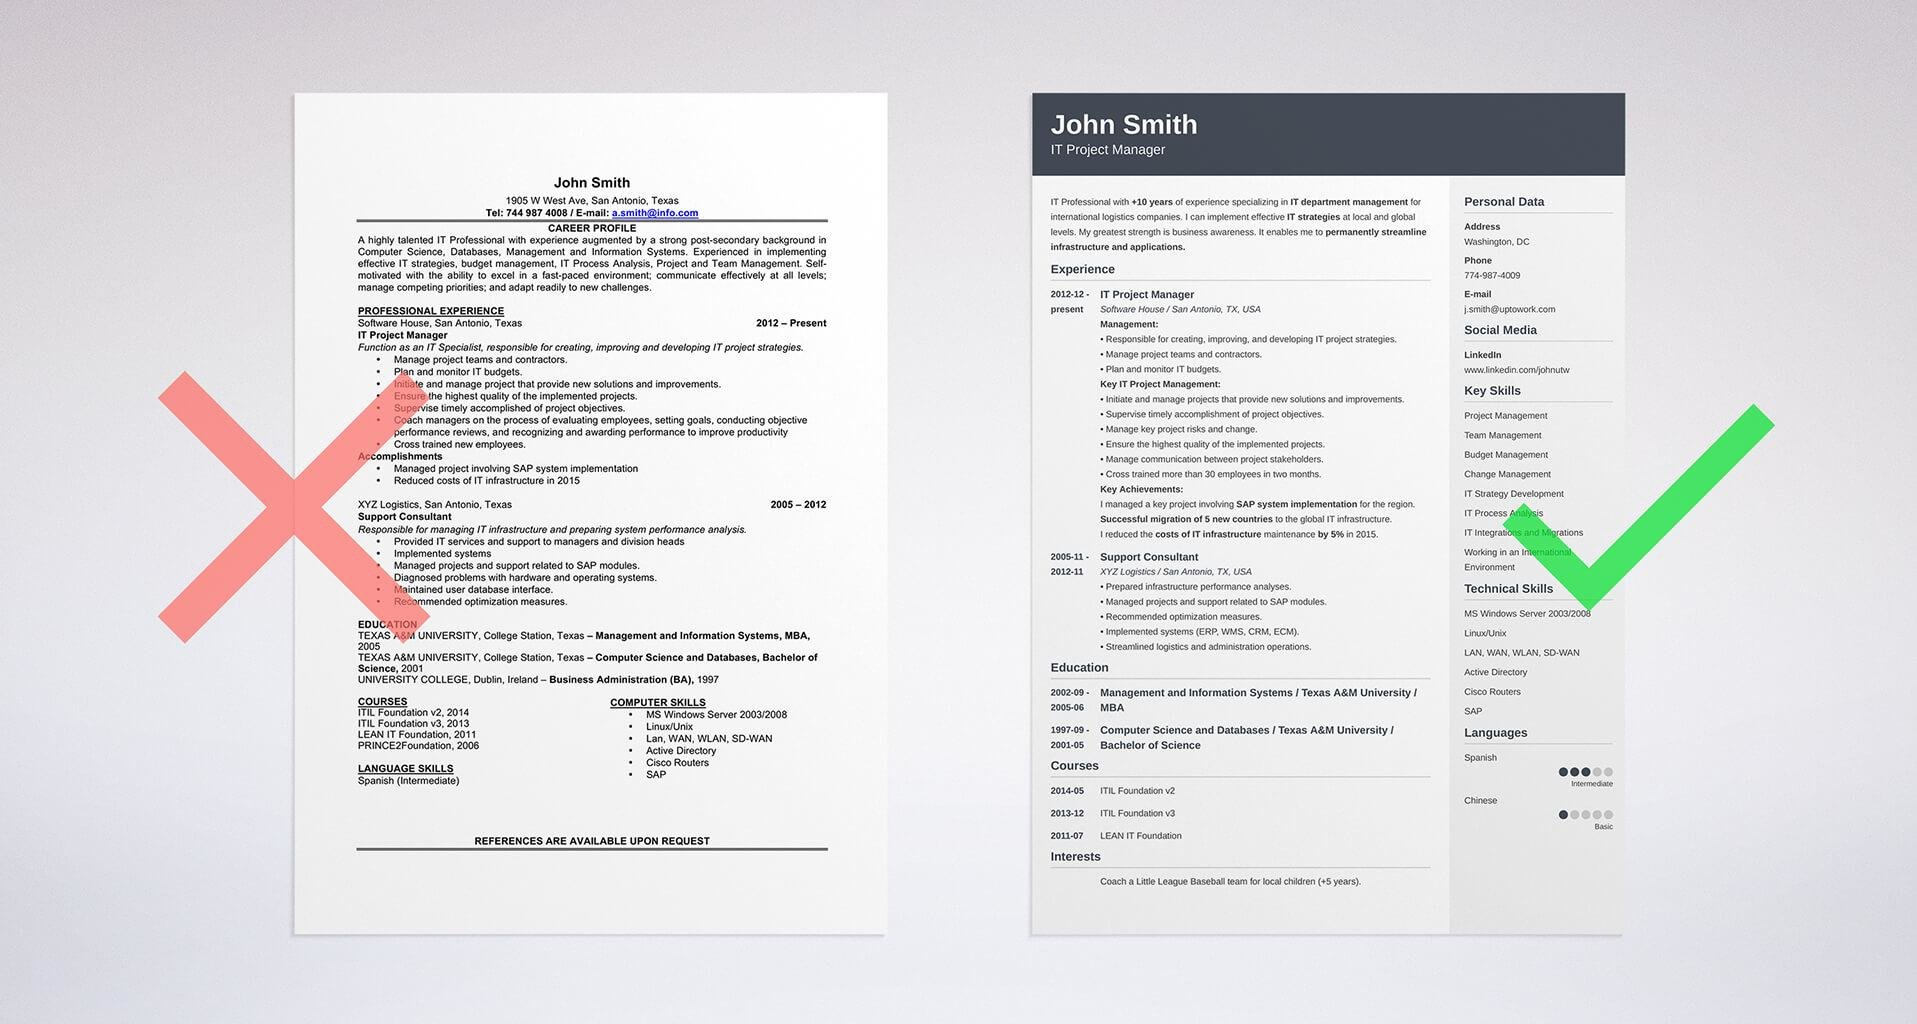 resume formats pick the best one in 3 steps examples templates - Resume Formats